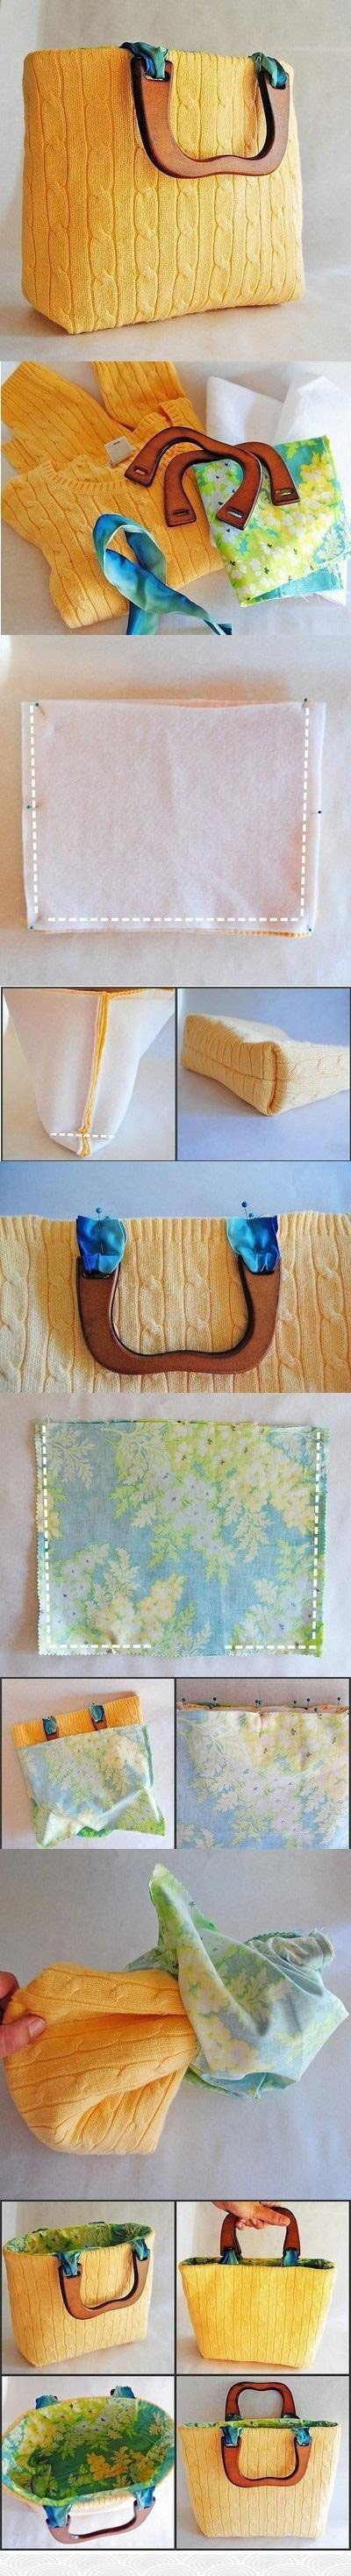 DIY: Stunning Fashion Ideas From that old Sweater in your closet to a trendy Handbag, super clever